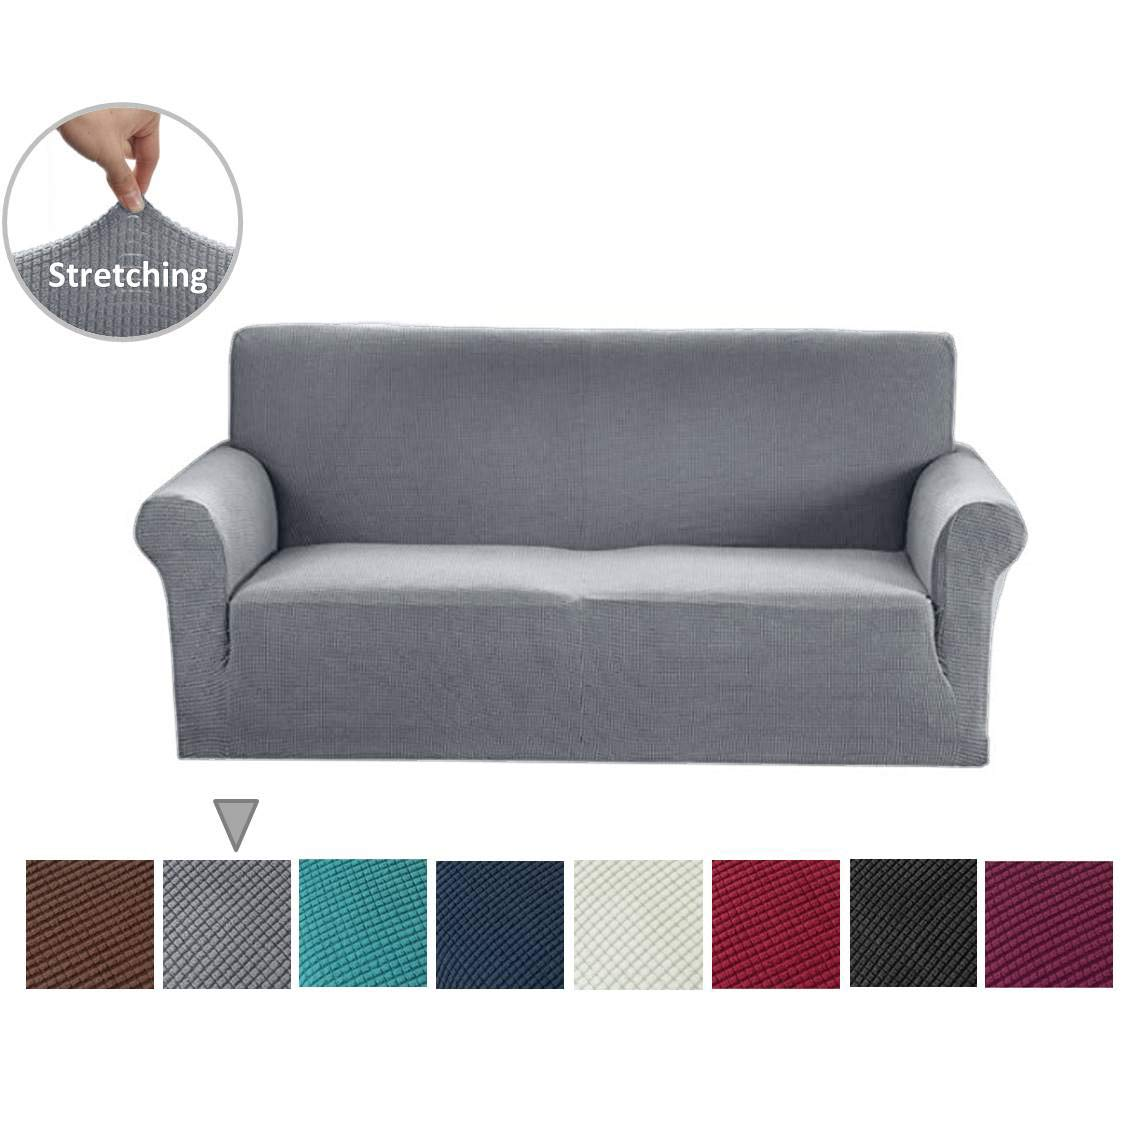 Argstar Jacquard Sofa Covers for Loveseat, Elastic Fabric Slip Cover for Couch and Love Seat, Light Gray by Argstar